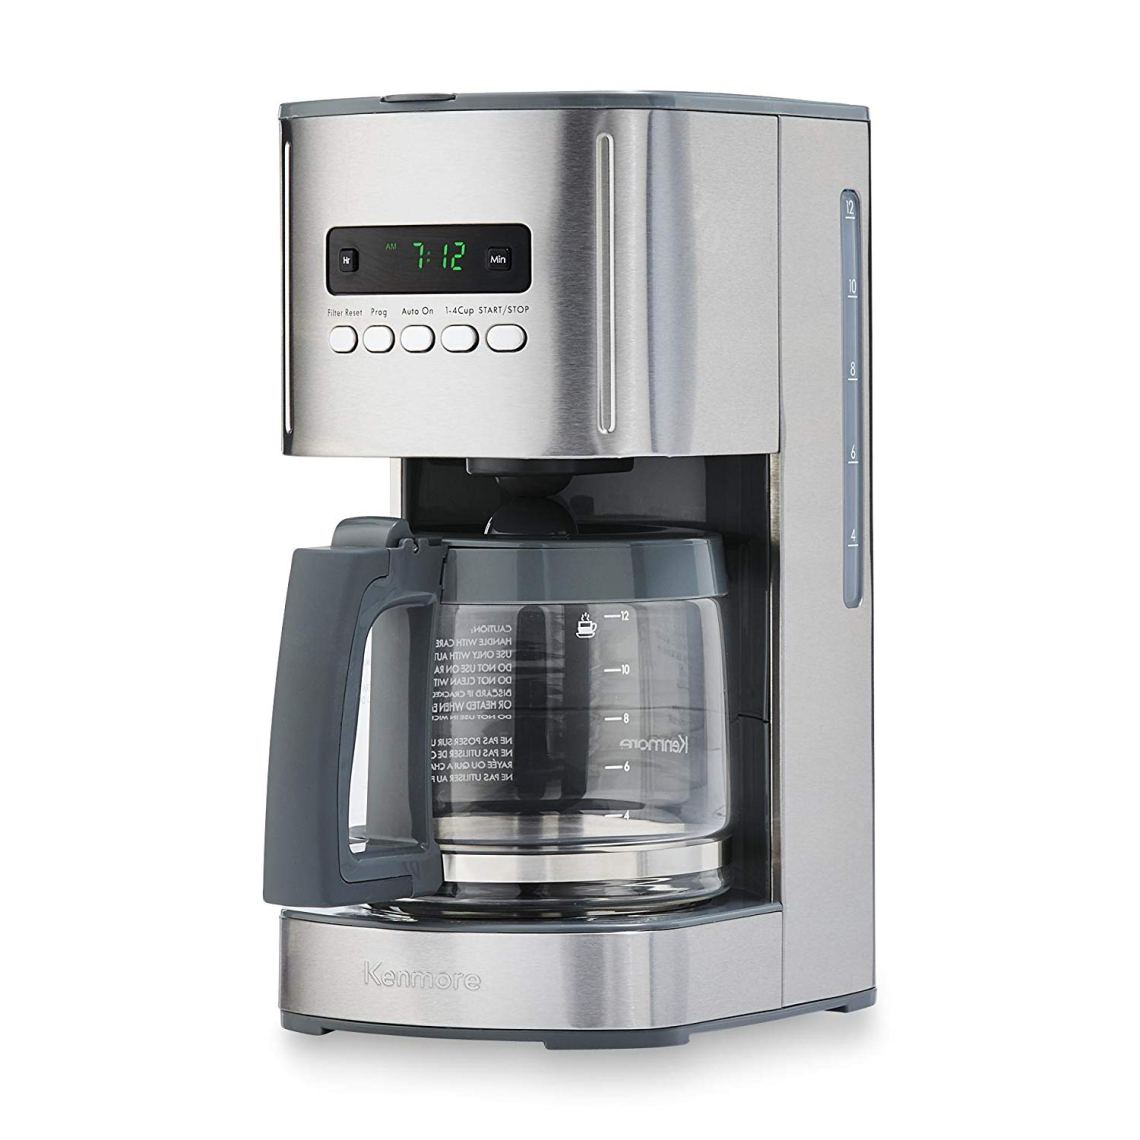 Kenmore-Aroma-Control-Programmable-Coffee-Maker-Info-Graphics